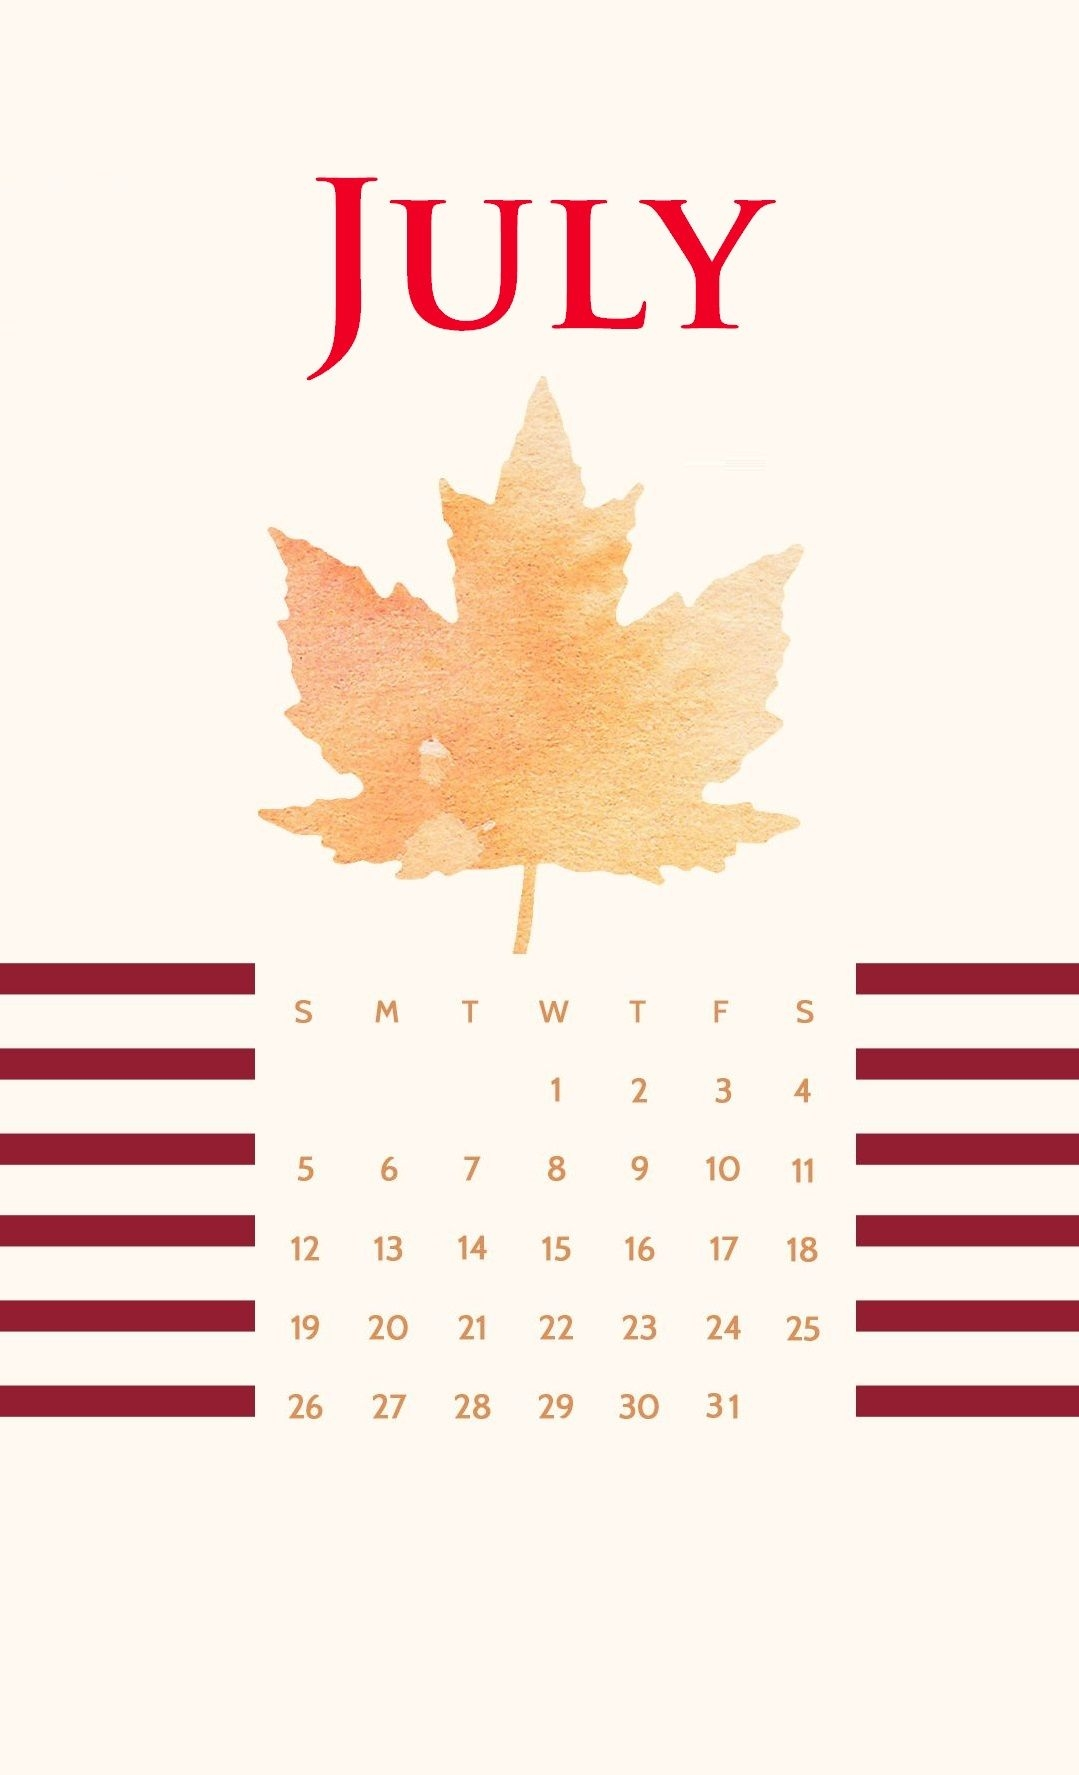 free july 2020 iphone wallpaper in 2020 iphone wallpaper iphone wallpaper::July 2022 Calendar Wallpaper iPhone